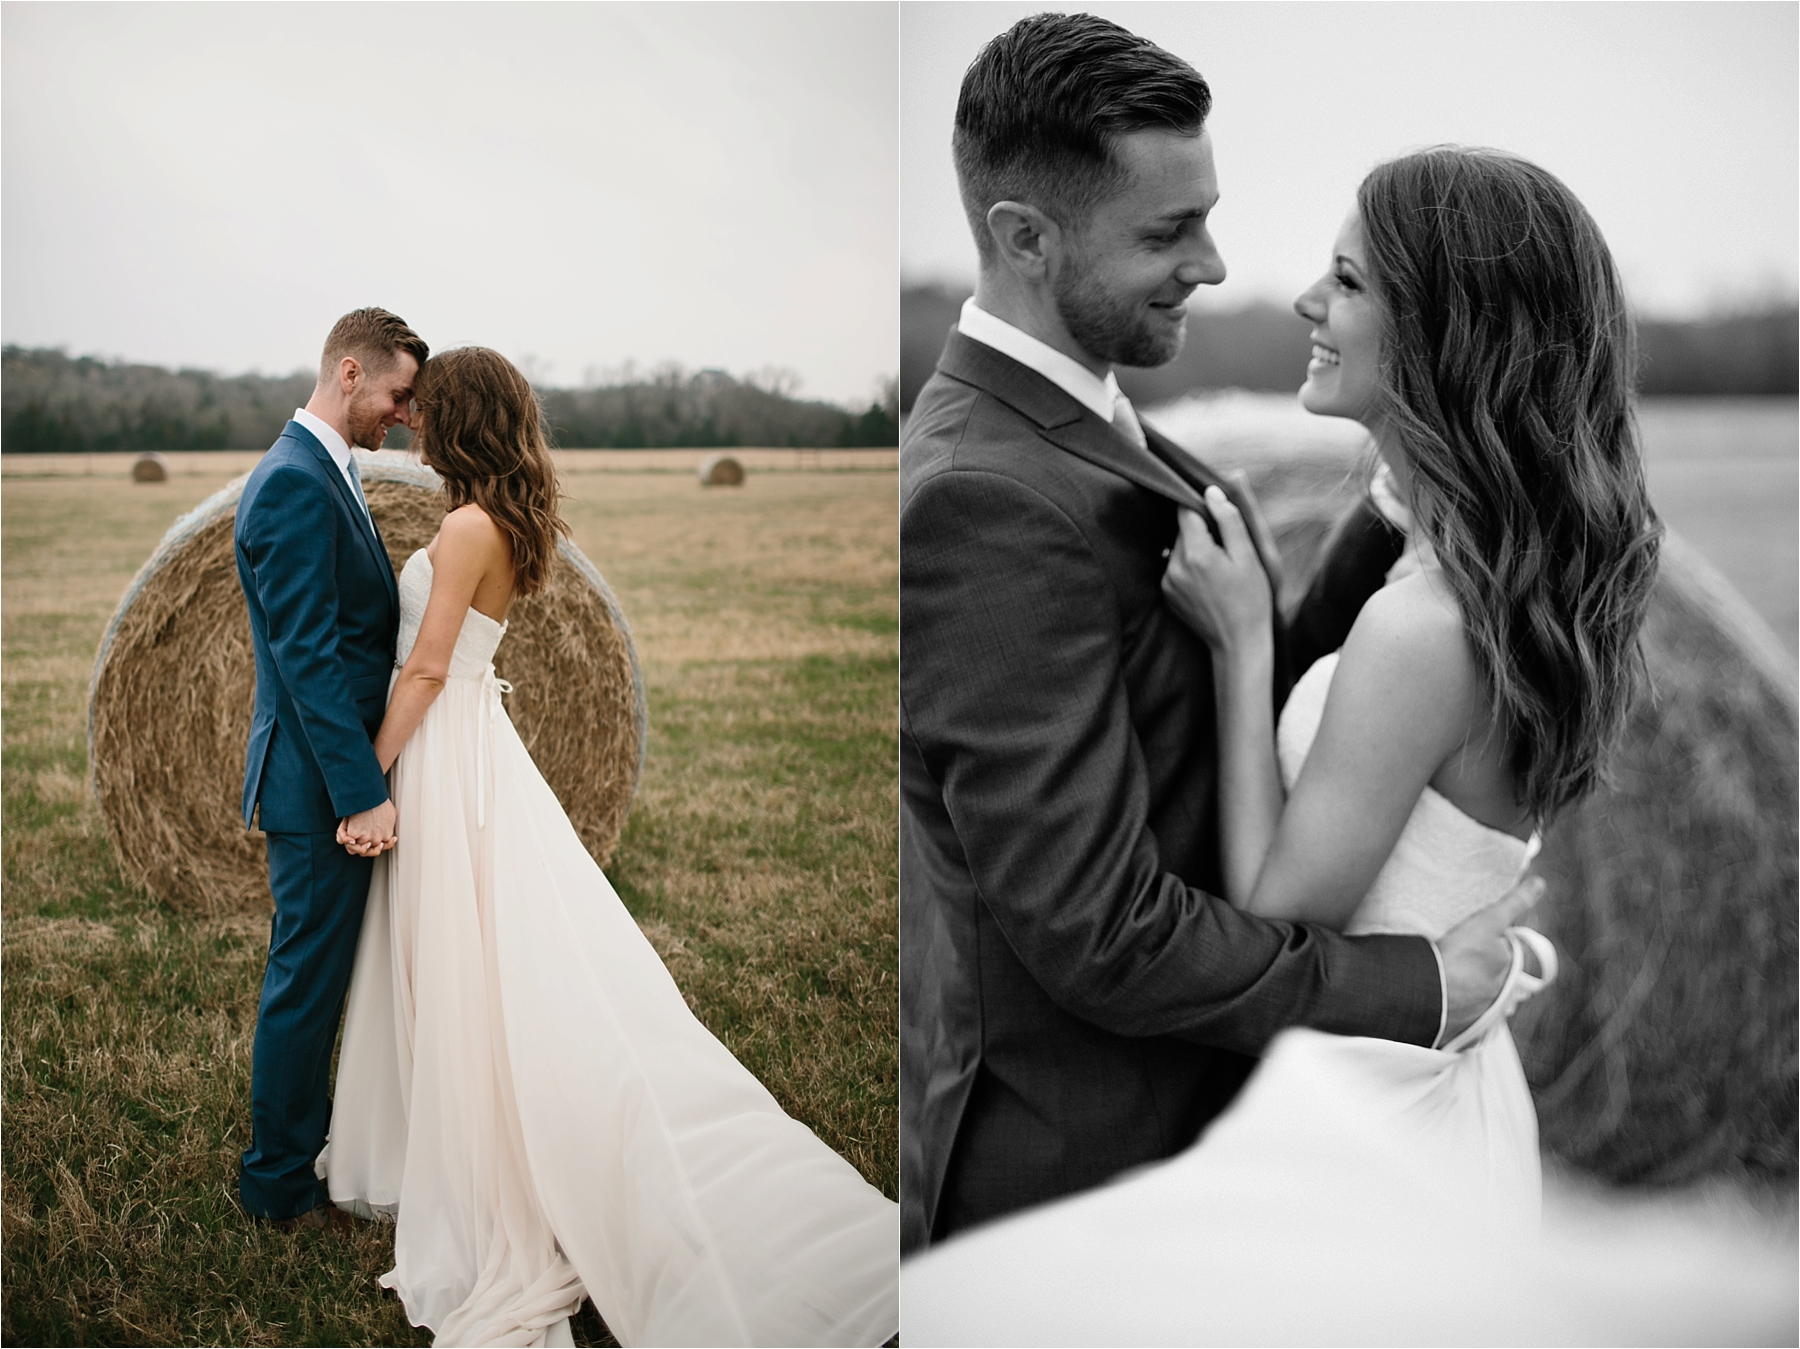 Lauren + Matt __ an intimate, emotional, blush pink, navy blue, and greenery toned wedding accents at the Brooks at Weatherford by North Texas Wedding Photographer Rachel Meagan Photography049